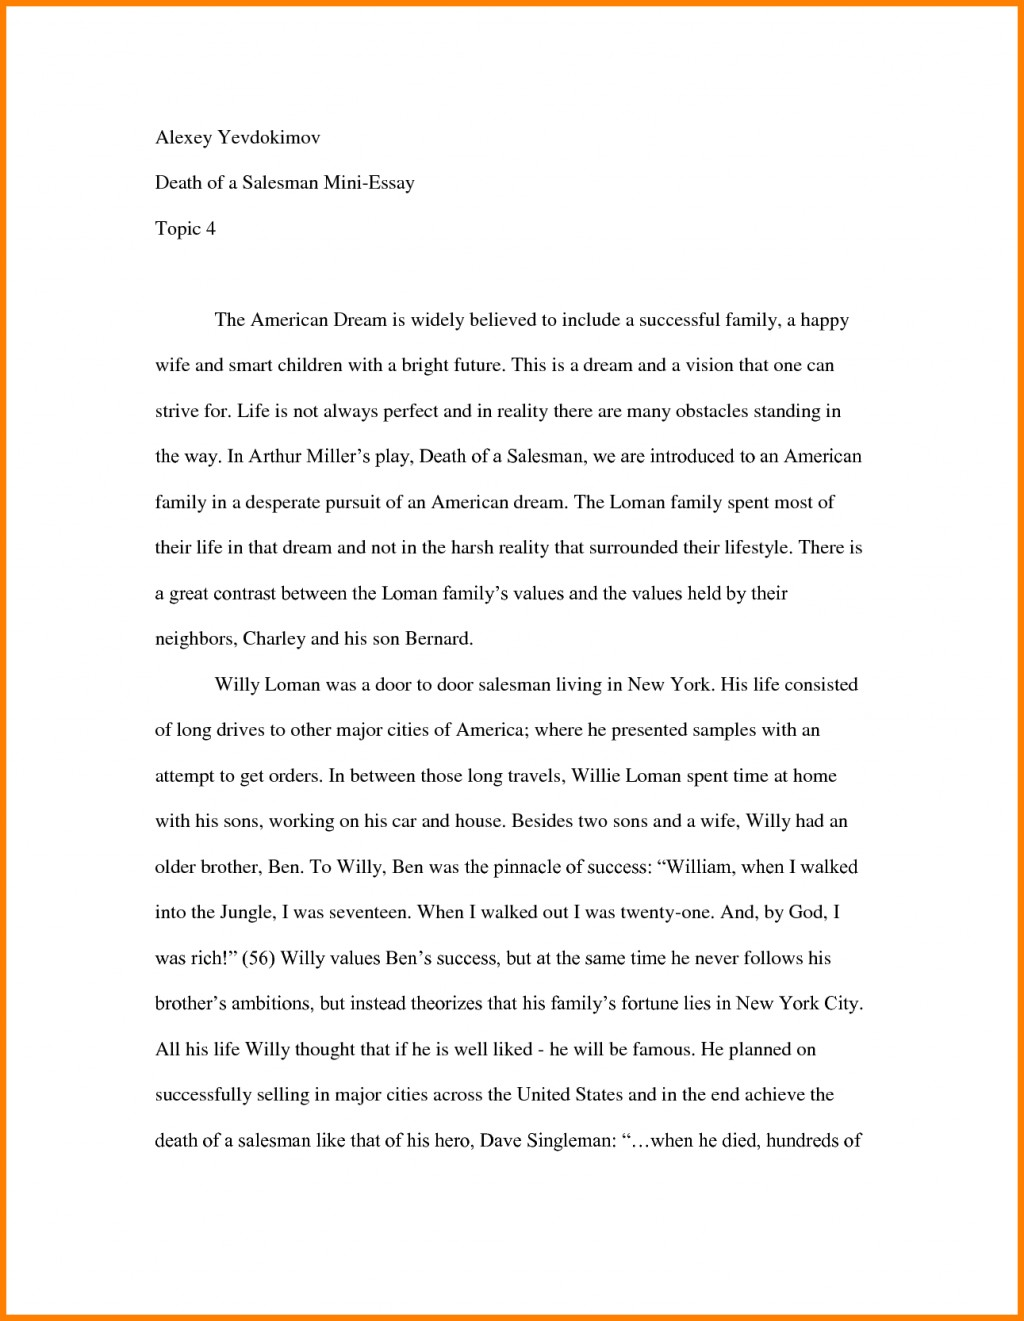 005 How To Begin An Essay Start Off About Yourself Incredible Introduction A Book Large